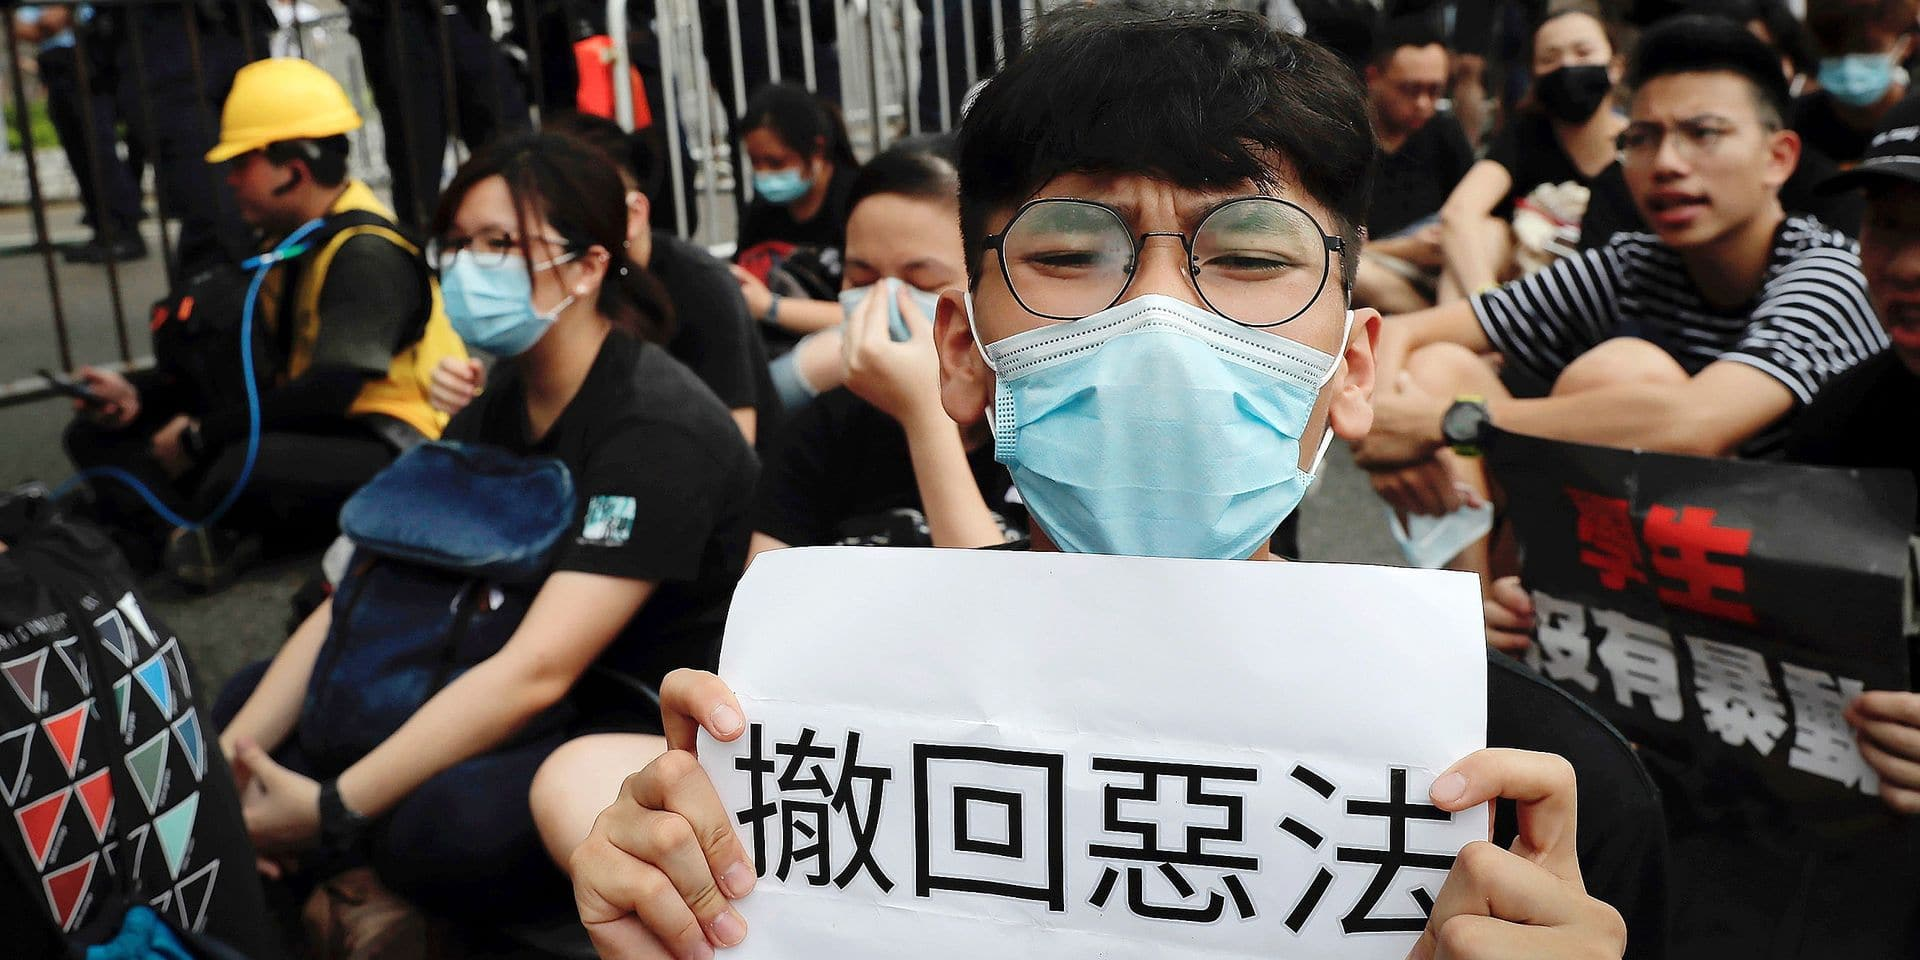 Protesters gather behind police line calling Hong Kong Chief Executive Carrie Lam to step down as they continue protest against the unpopular extradition bill near the Legislative Council in Hong Kong, Monday, June 17, 2019. A member of Hong Kong's Executive Council says the city's leader plans to apologize again over her handling of a highly unpopular extradition bill. (AP Photo/Kin Cheung)